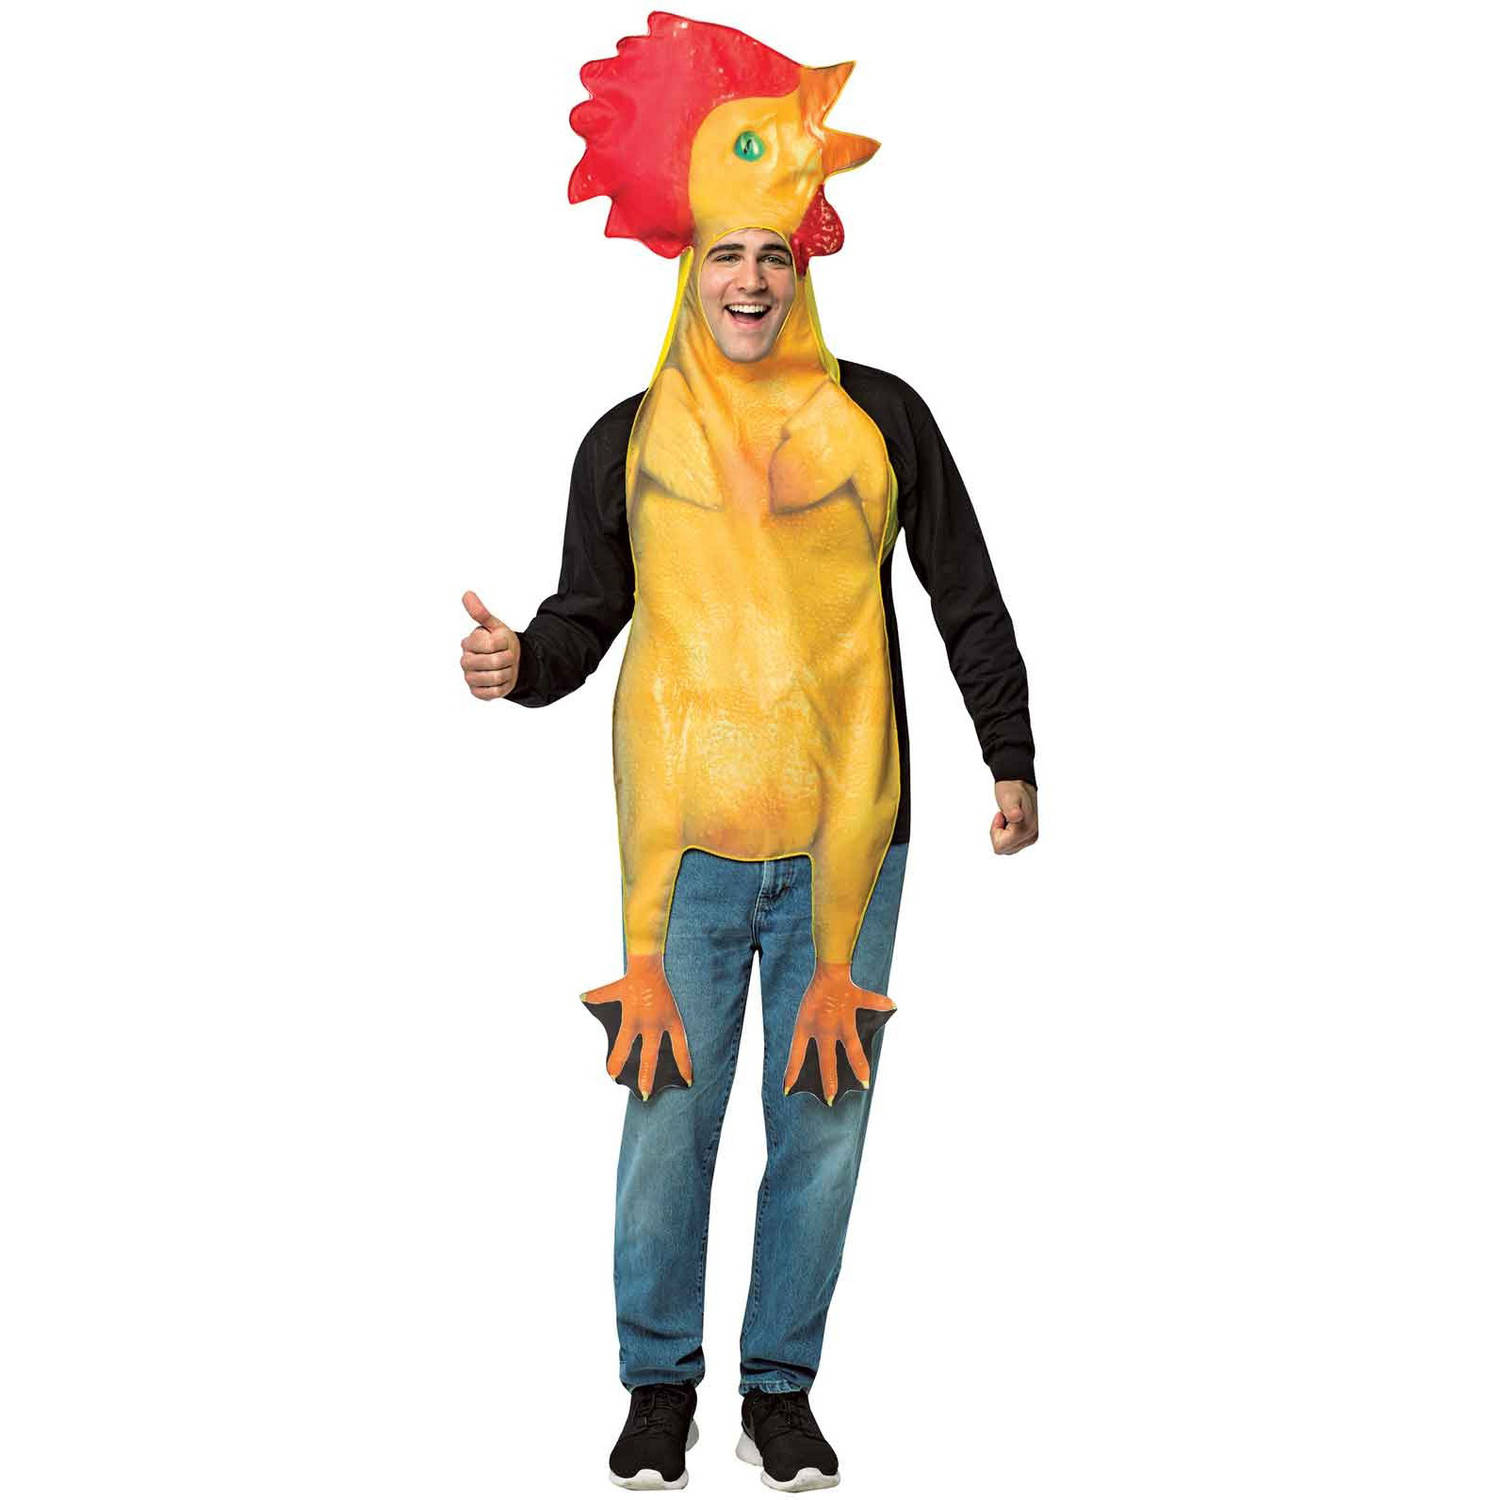 Rubber Chicken Men's Adult Halloween Costume